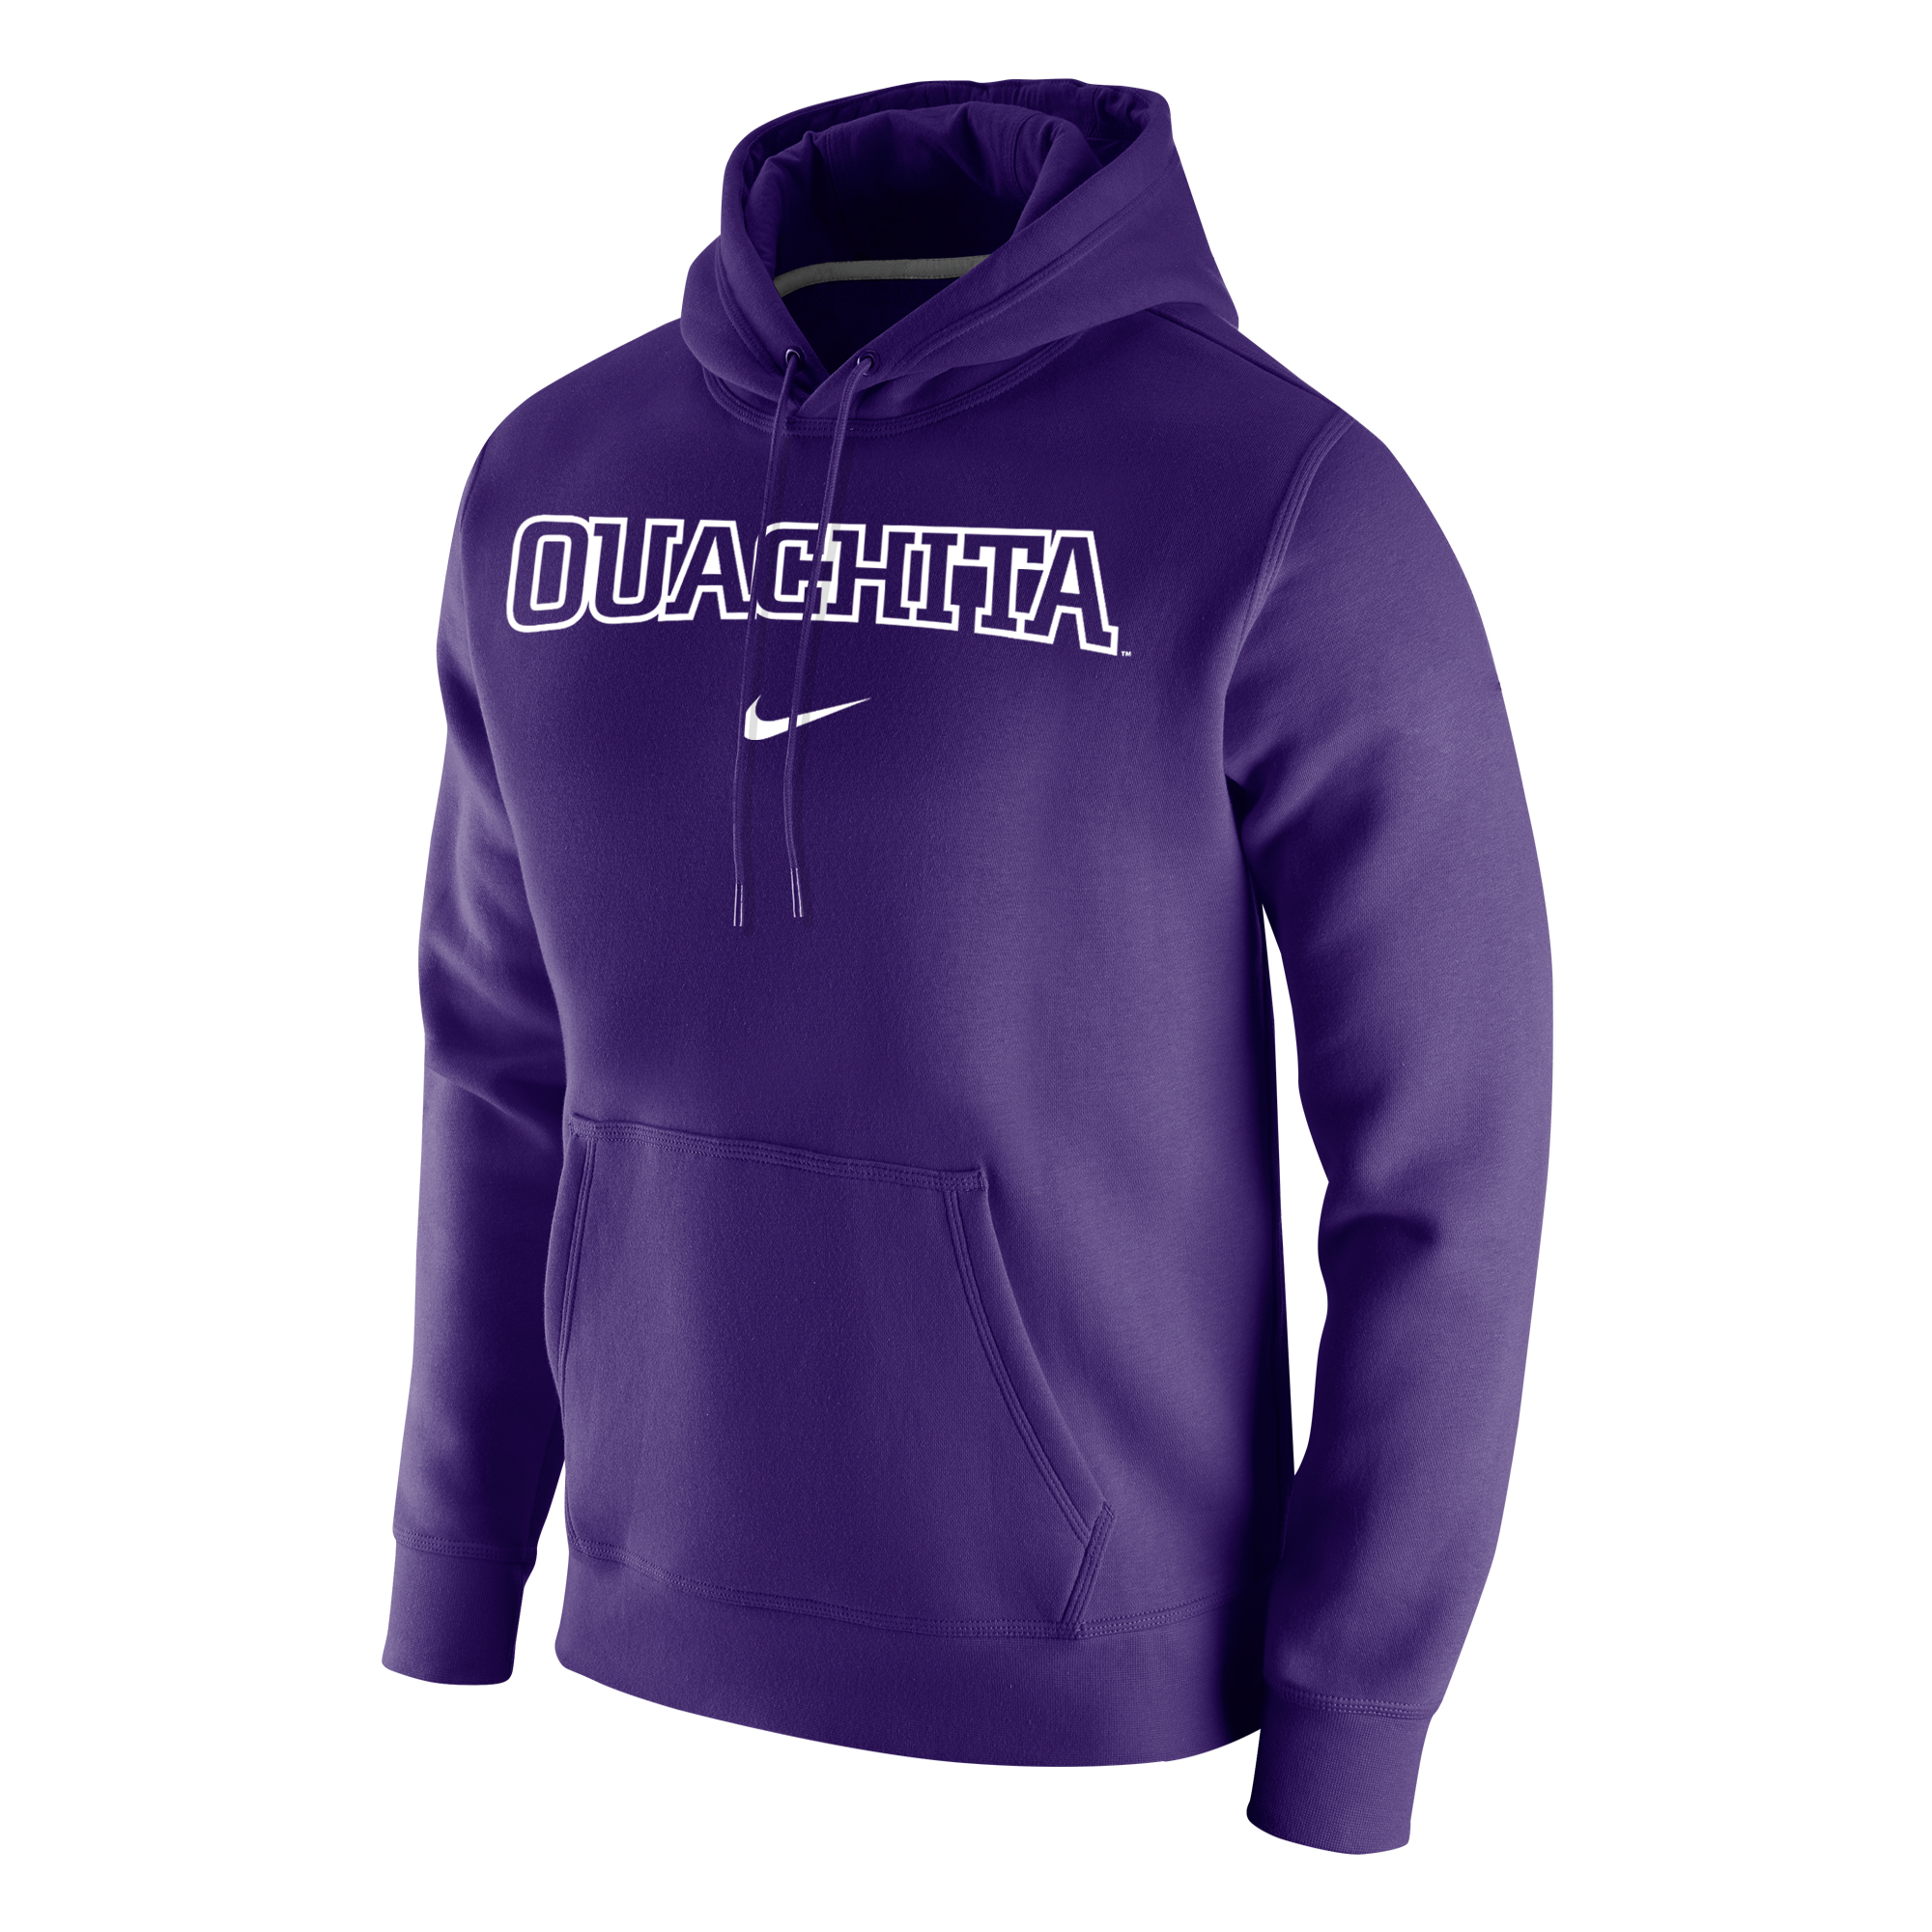 OUACHITA NIKE CLUB FLEECE PO HOODY